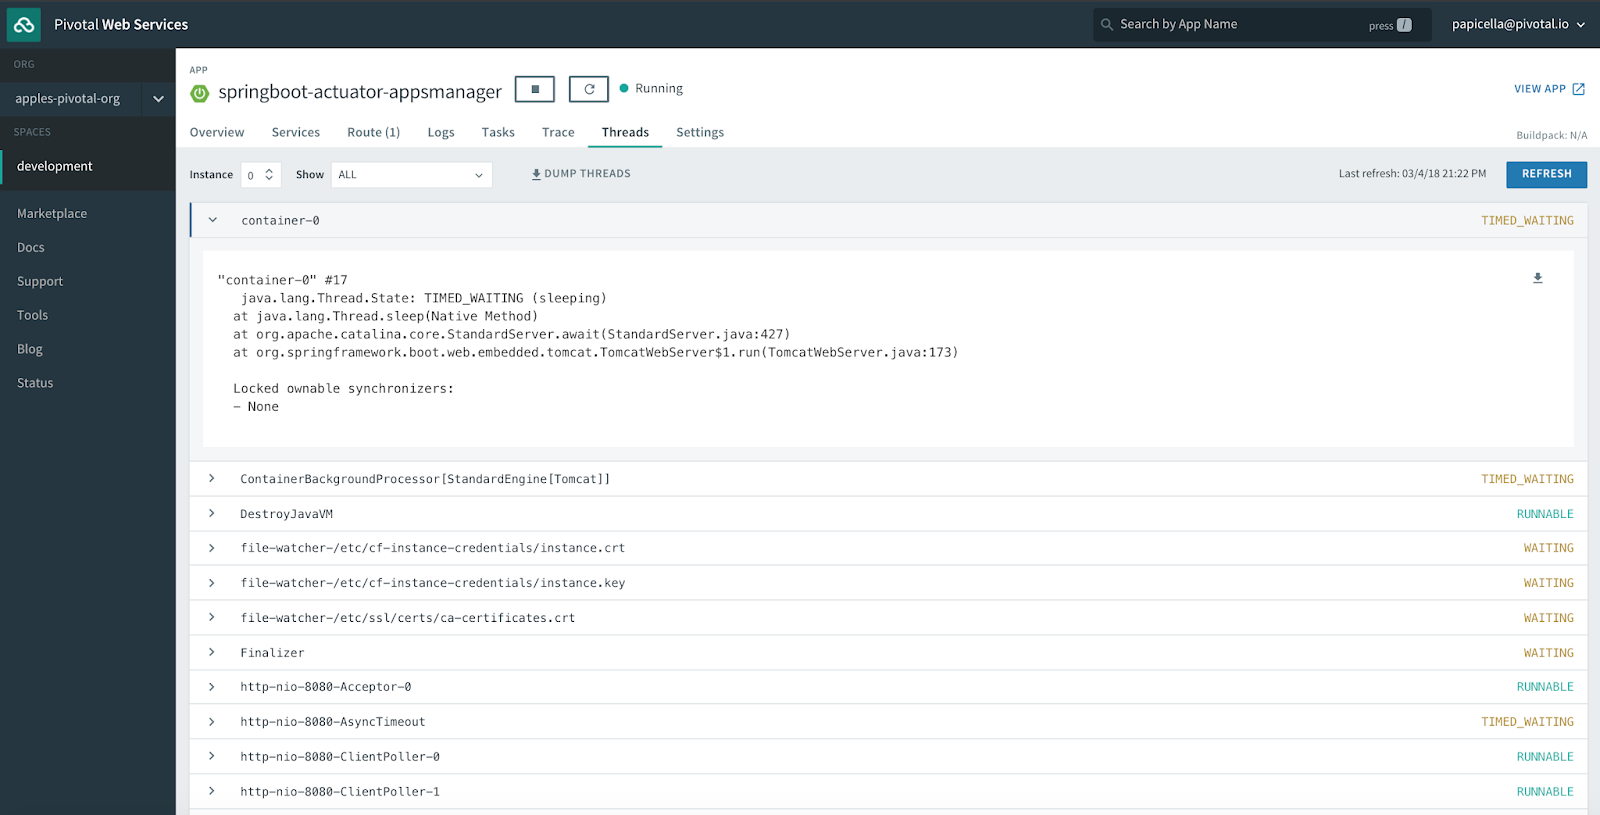 The Blas from Pas: Spring boot 2 Actuator Support and Pivotal Cloud